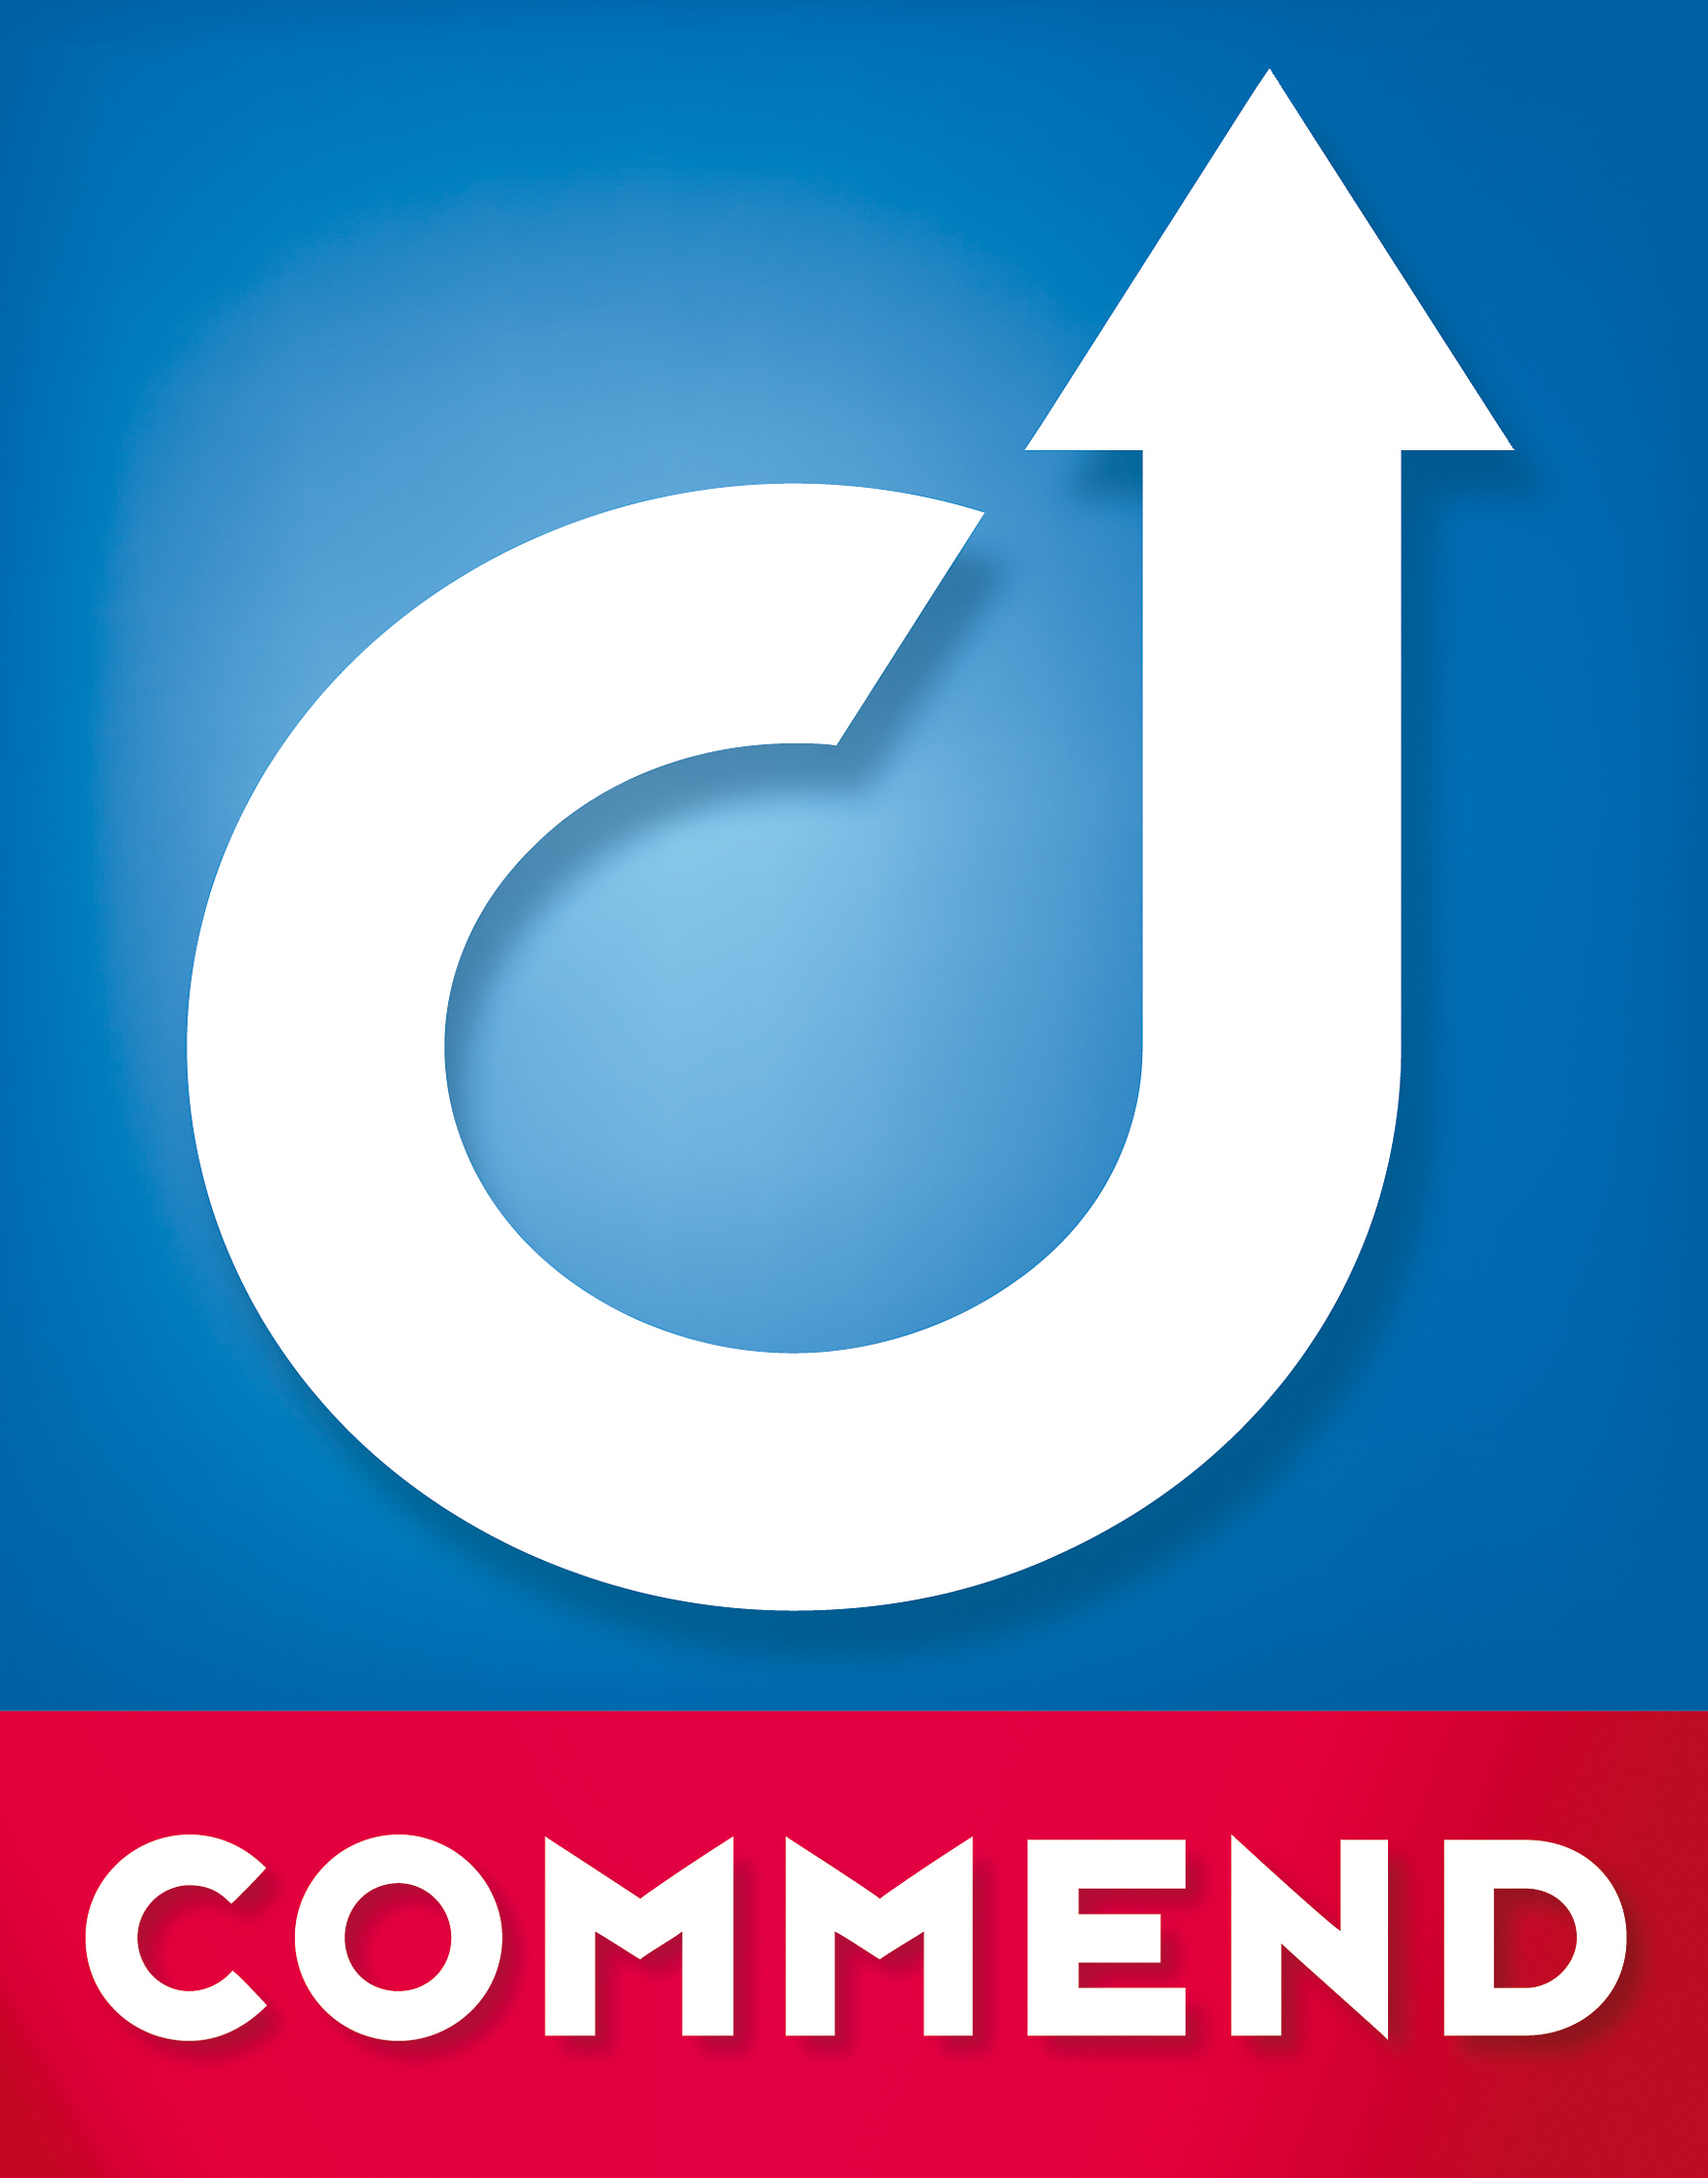 Copy of Commend